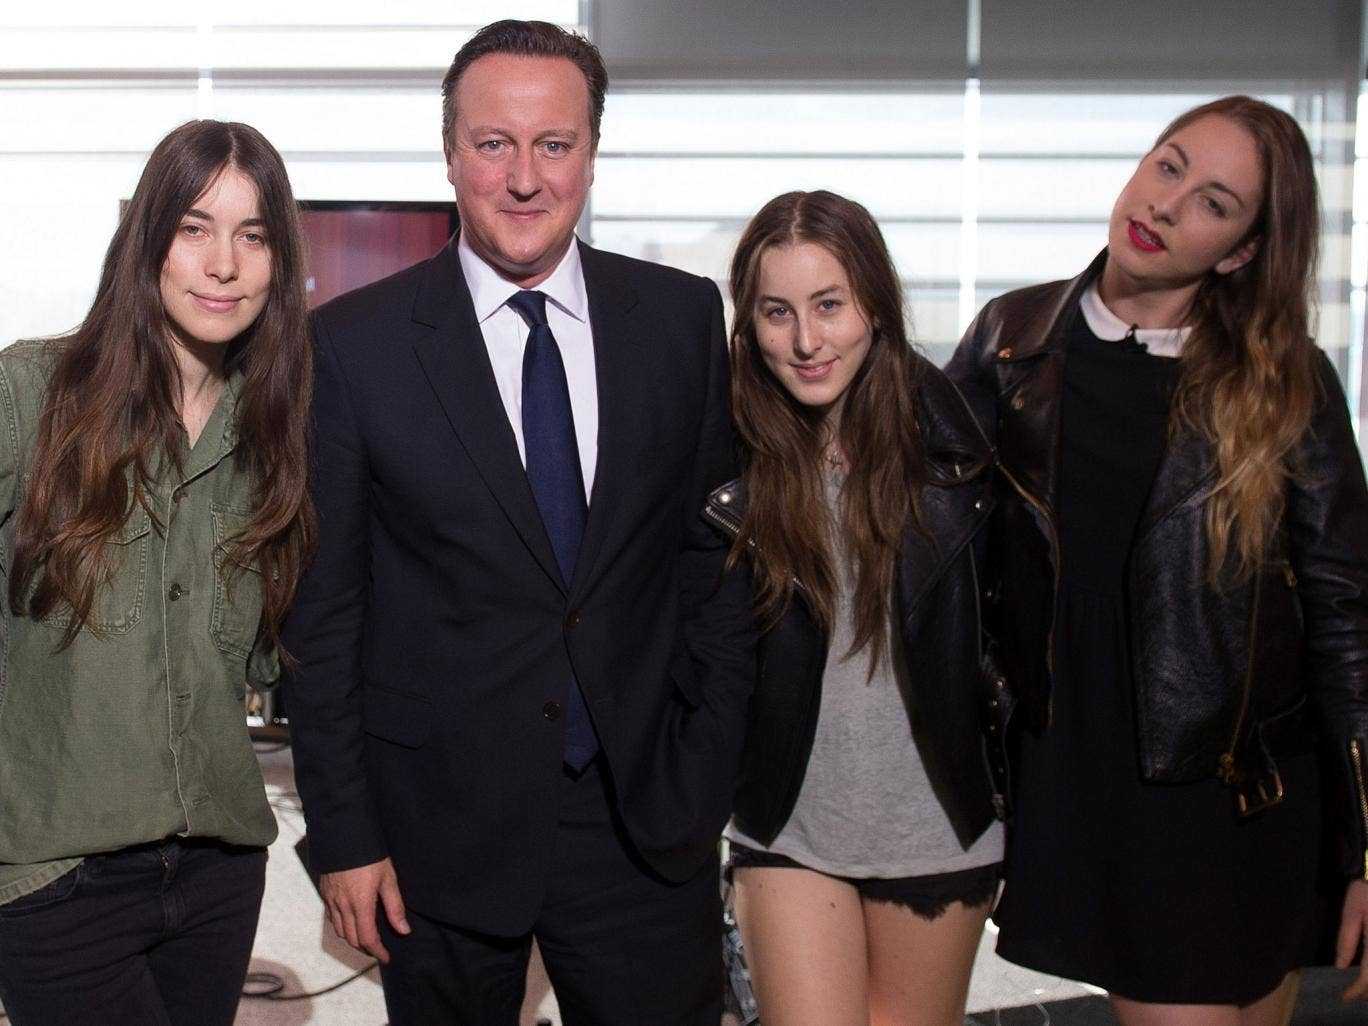 Prime Minister David Cameron poses the rock group Haim as they appear on the BBC current affairs programme, The Andrew Marr Show